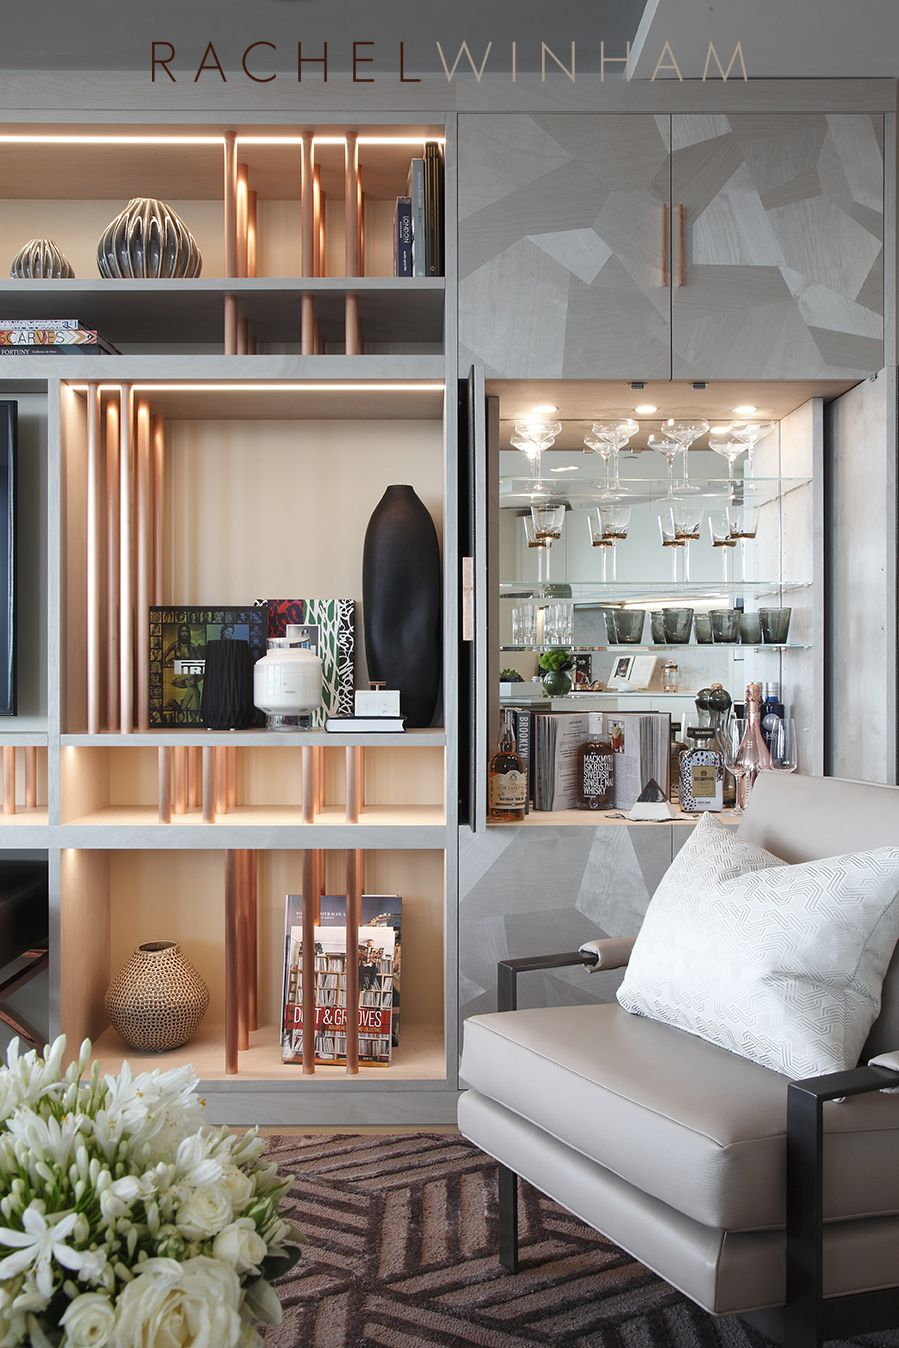 Introducing Rachel Winham Interior Design, A Leading London Based Interior  Design Practice With A Portfolio Of High End Residential And Developer  Projects.